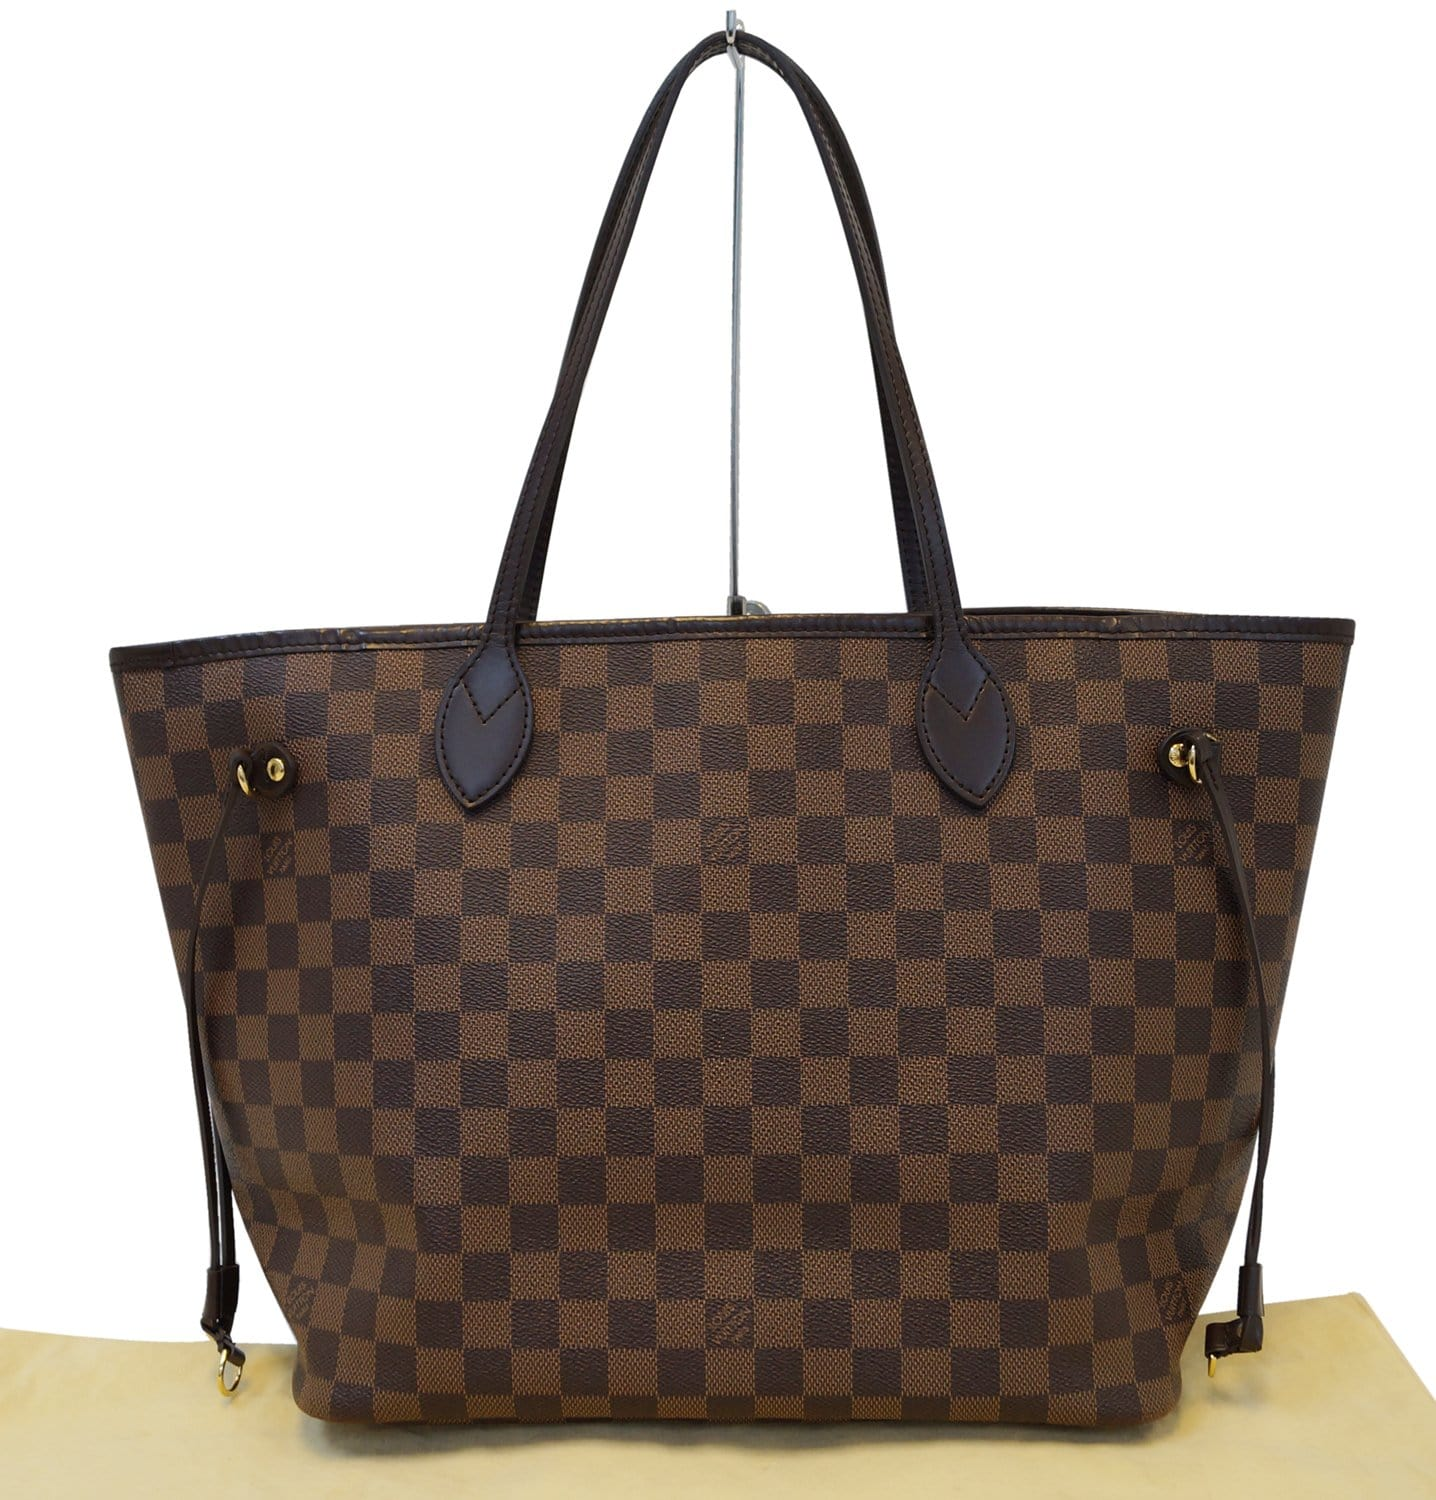 e8cc6f60083d Authentic LOUIS VUITTON Neverfull MM Damier Ebene Pink Tote Bag ...